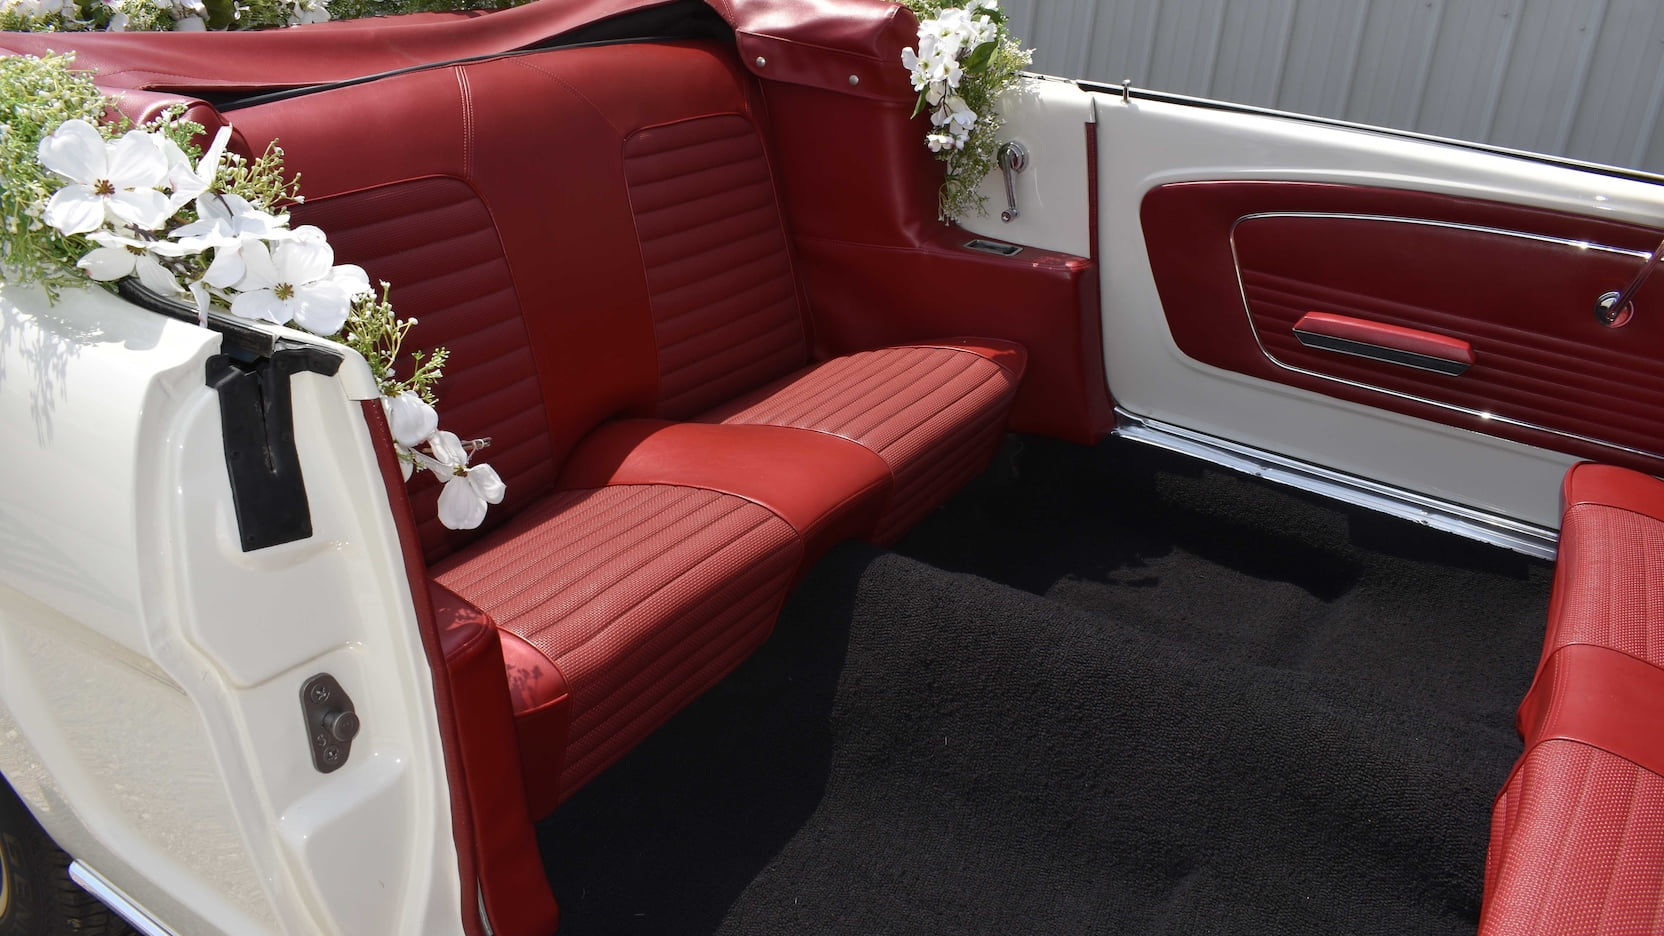 Ford Mustang Limousine rear seat